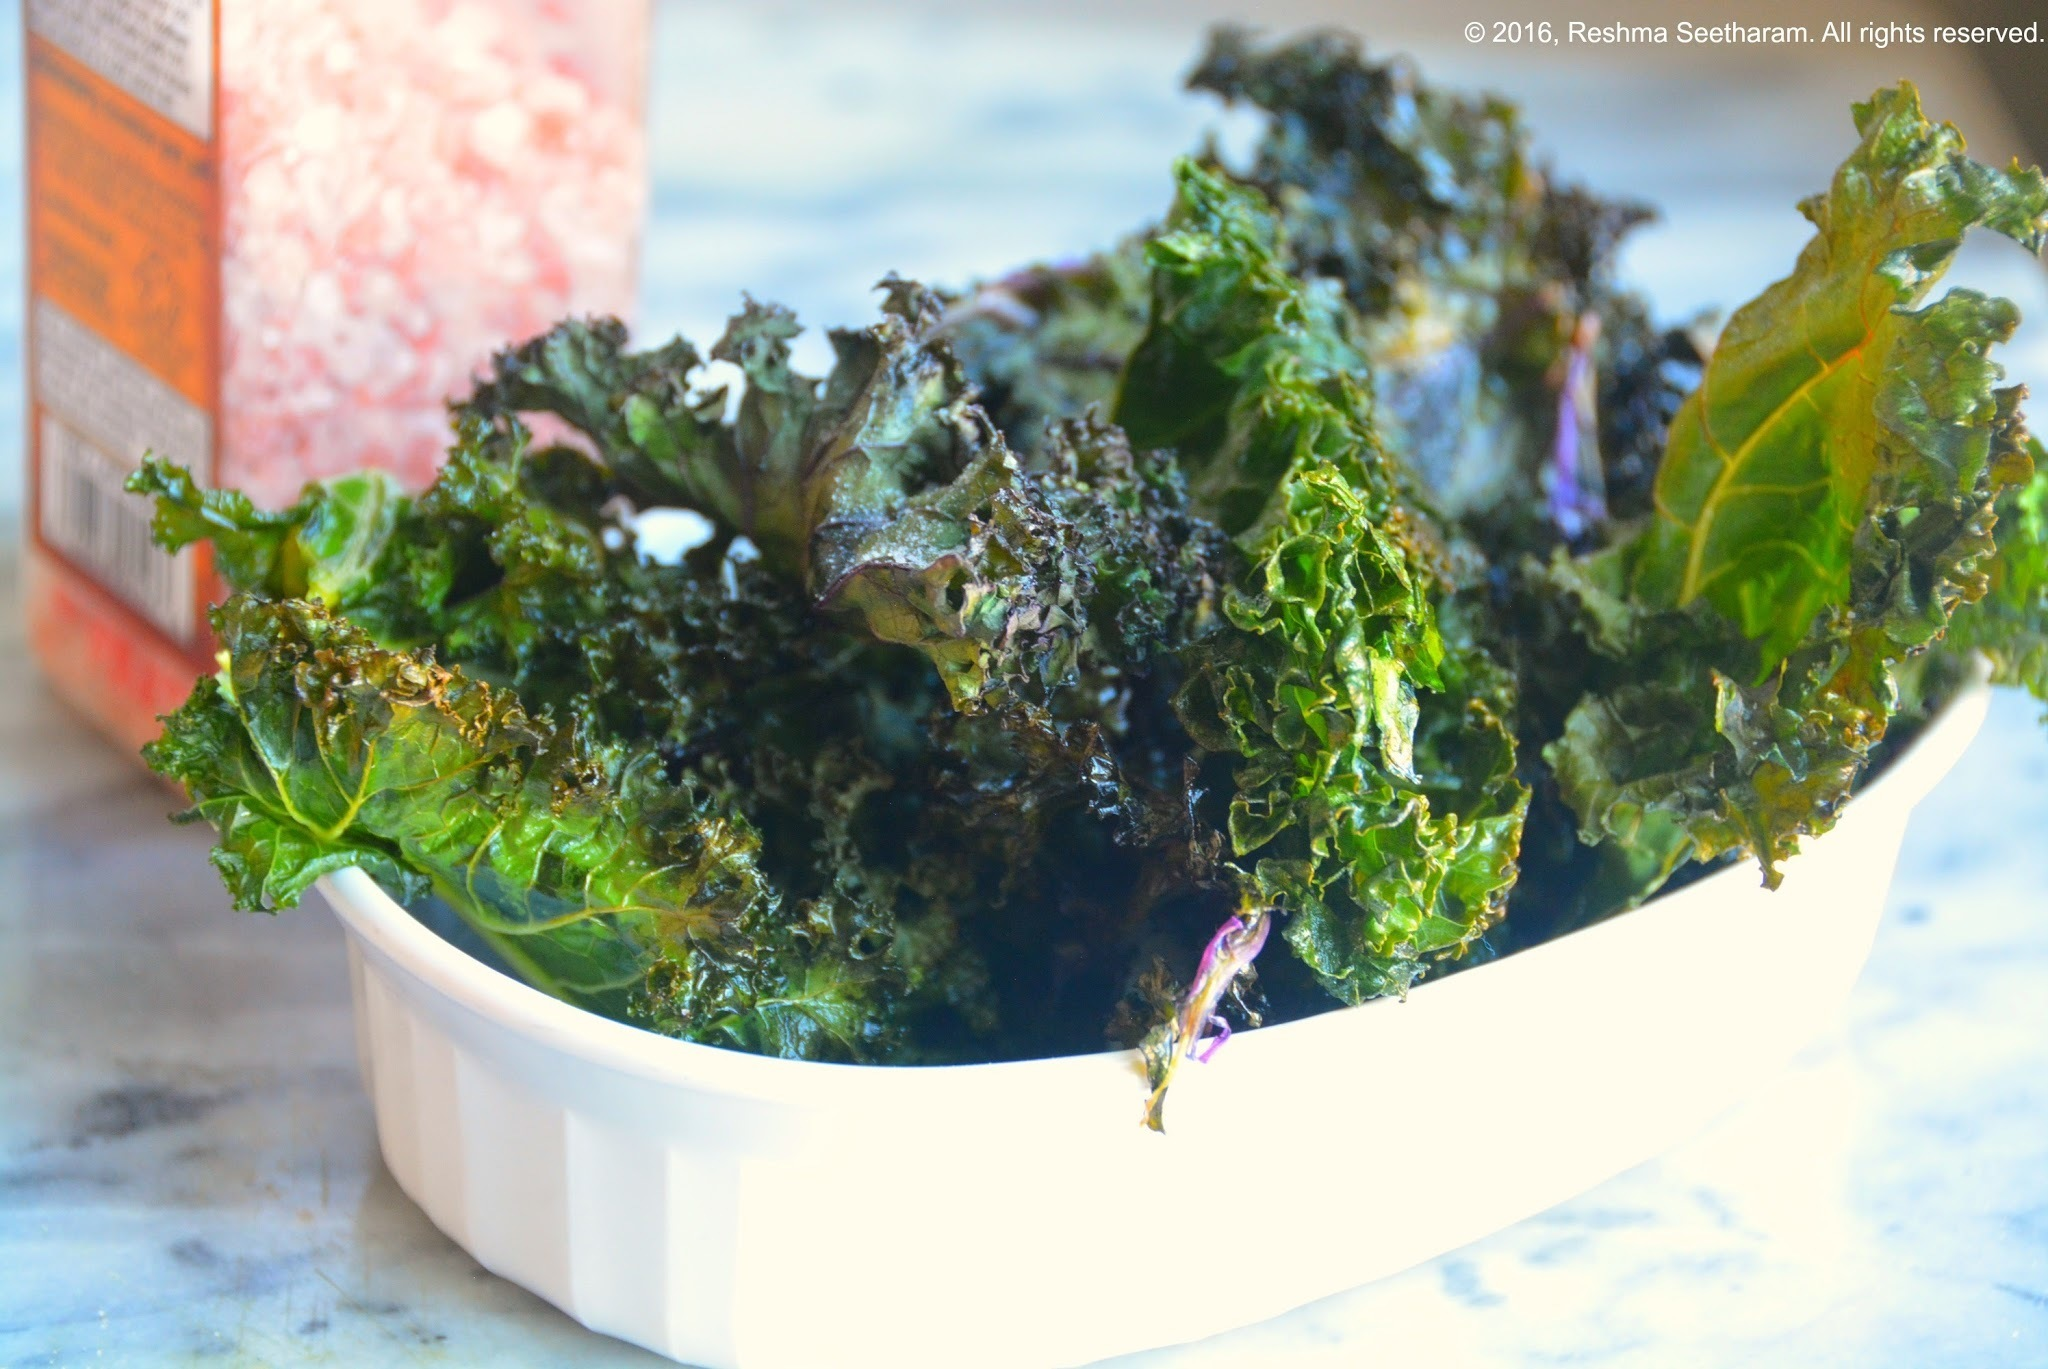 Kale chips seasoned with raspberry chipotle powder